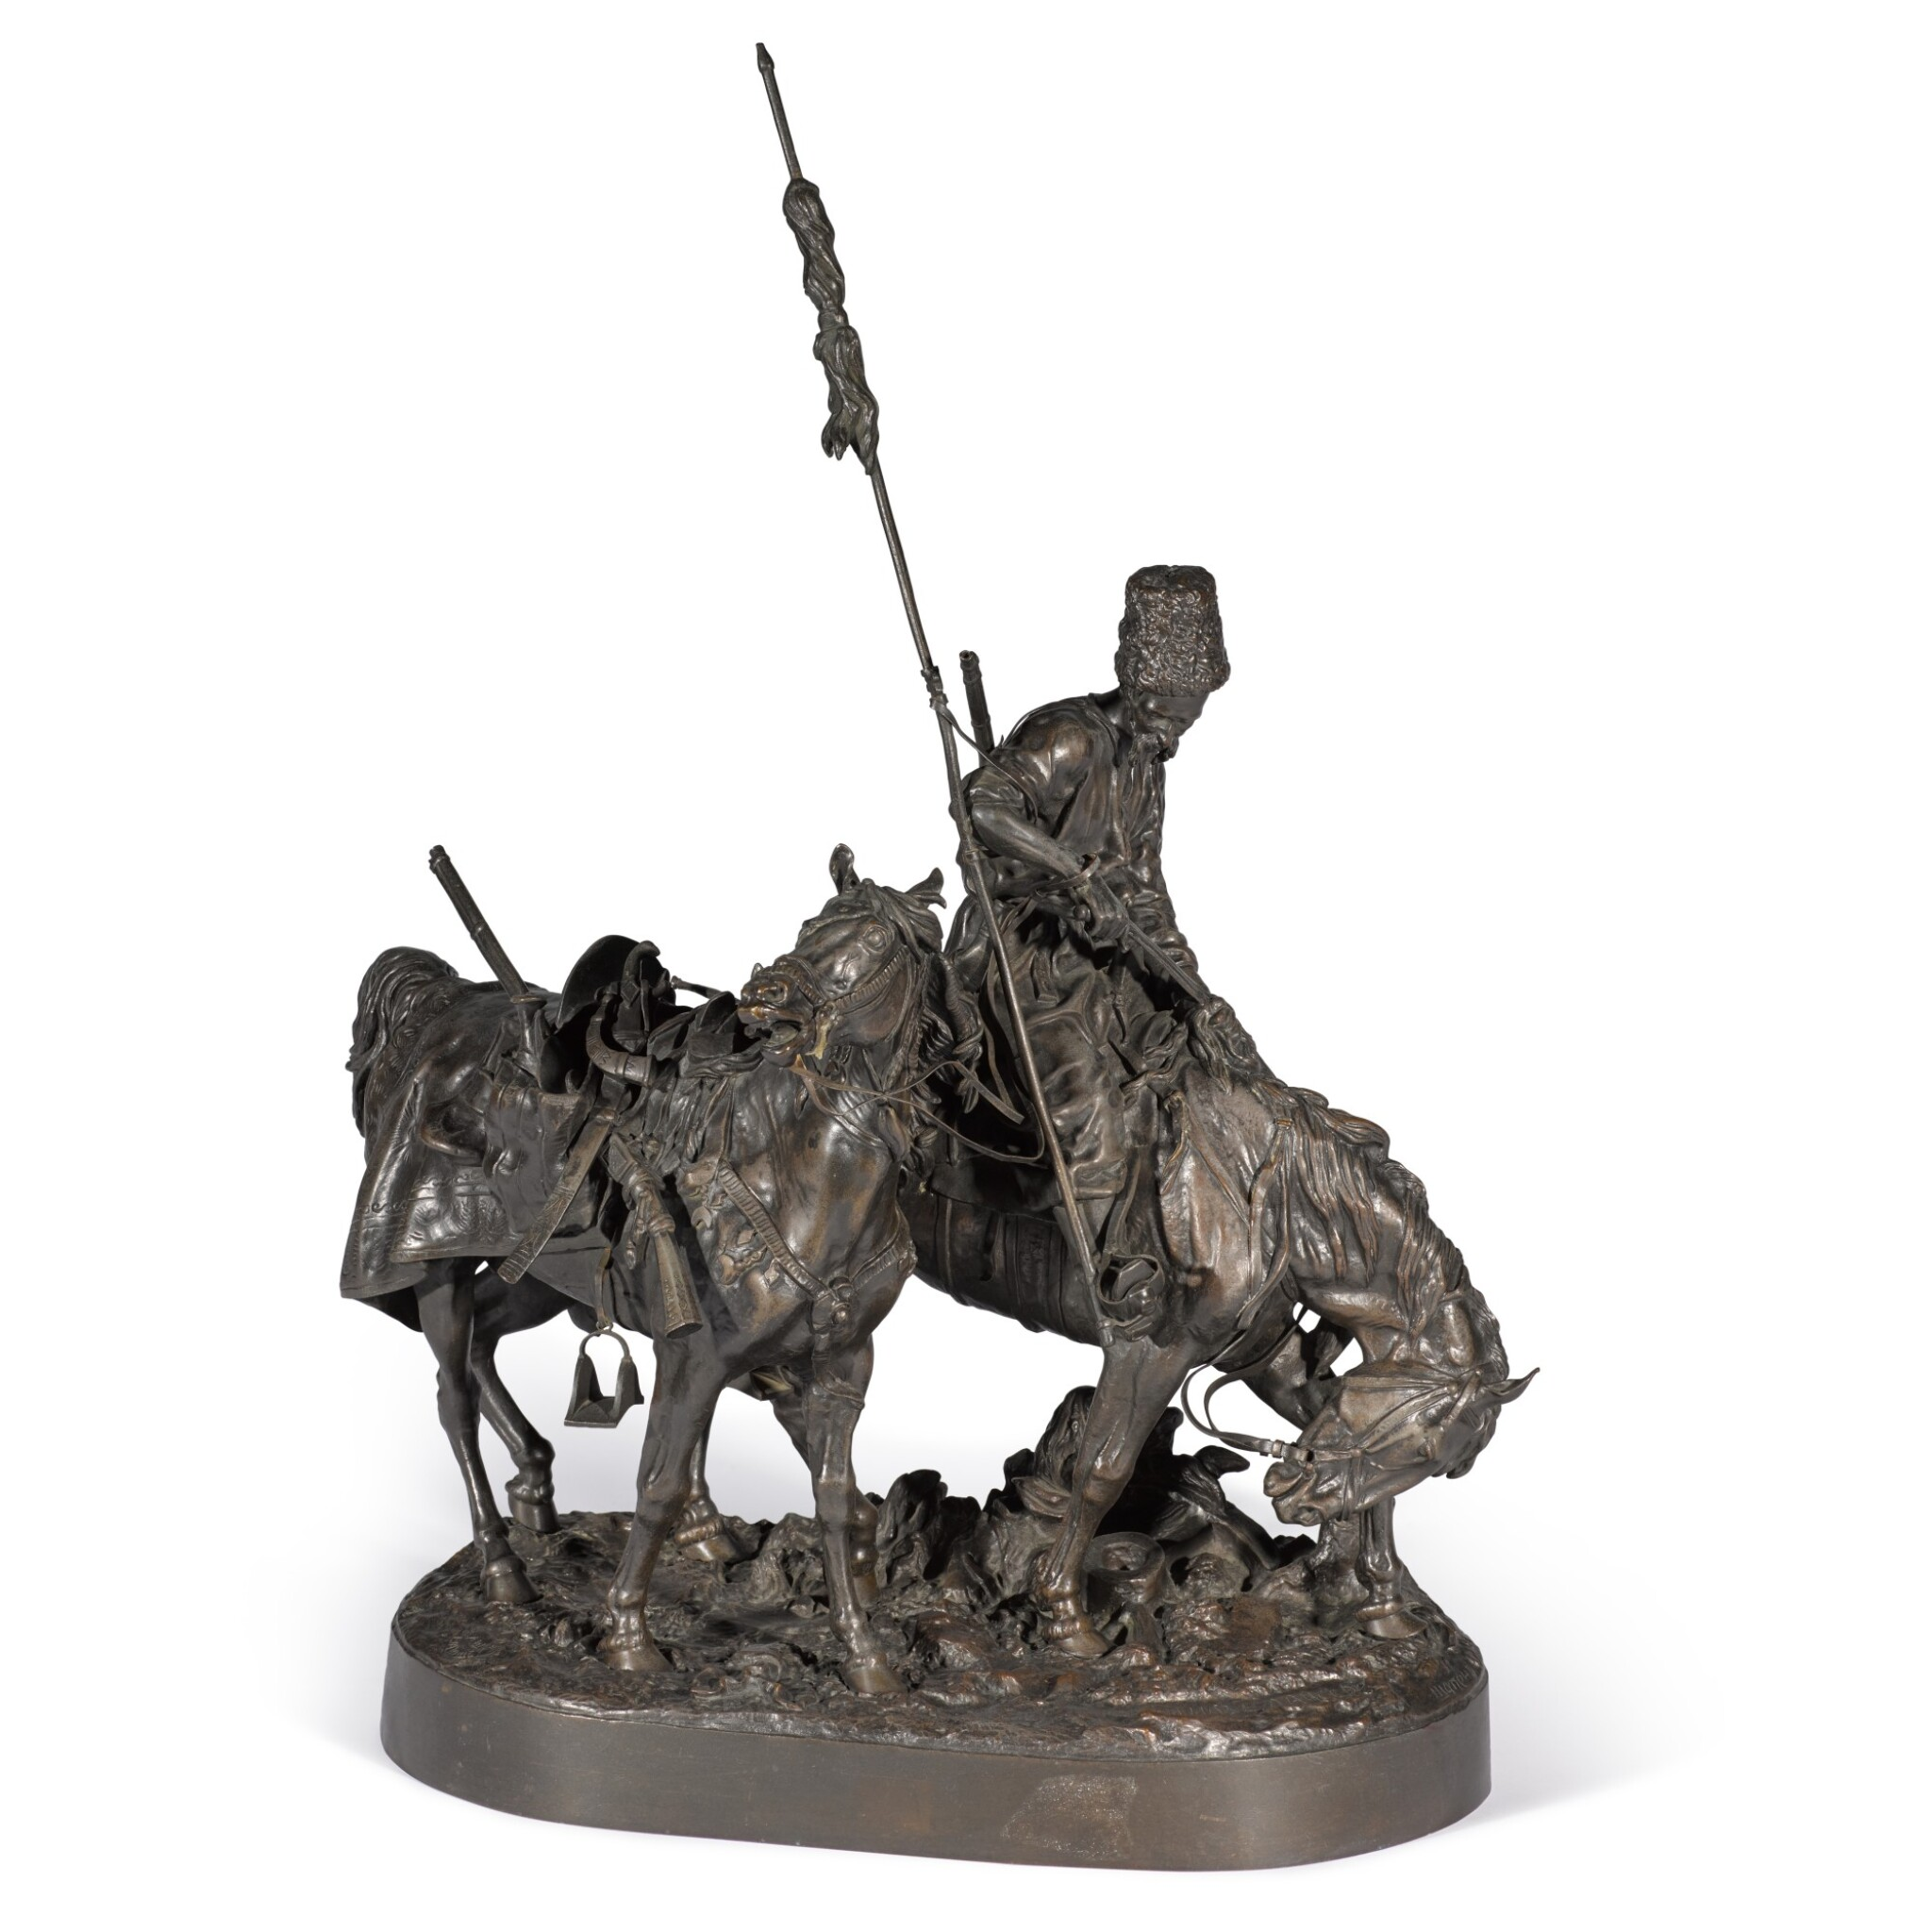 View full screen - View 1 of Lot 290. Zaporozhian Cossack after Battle: A bronze figural group, cast by Chopin, after the model by Evgeny Lansere (1848-1886).